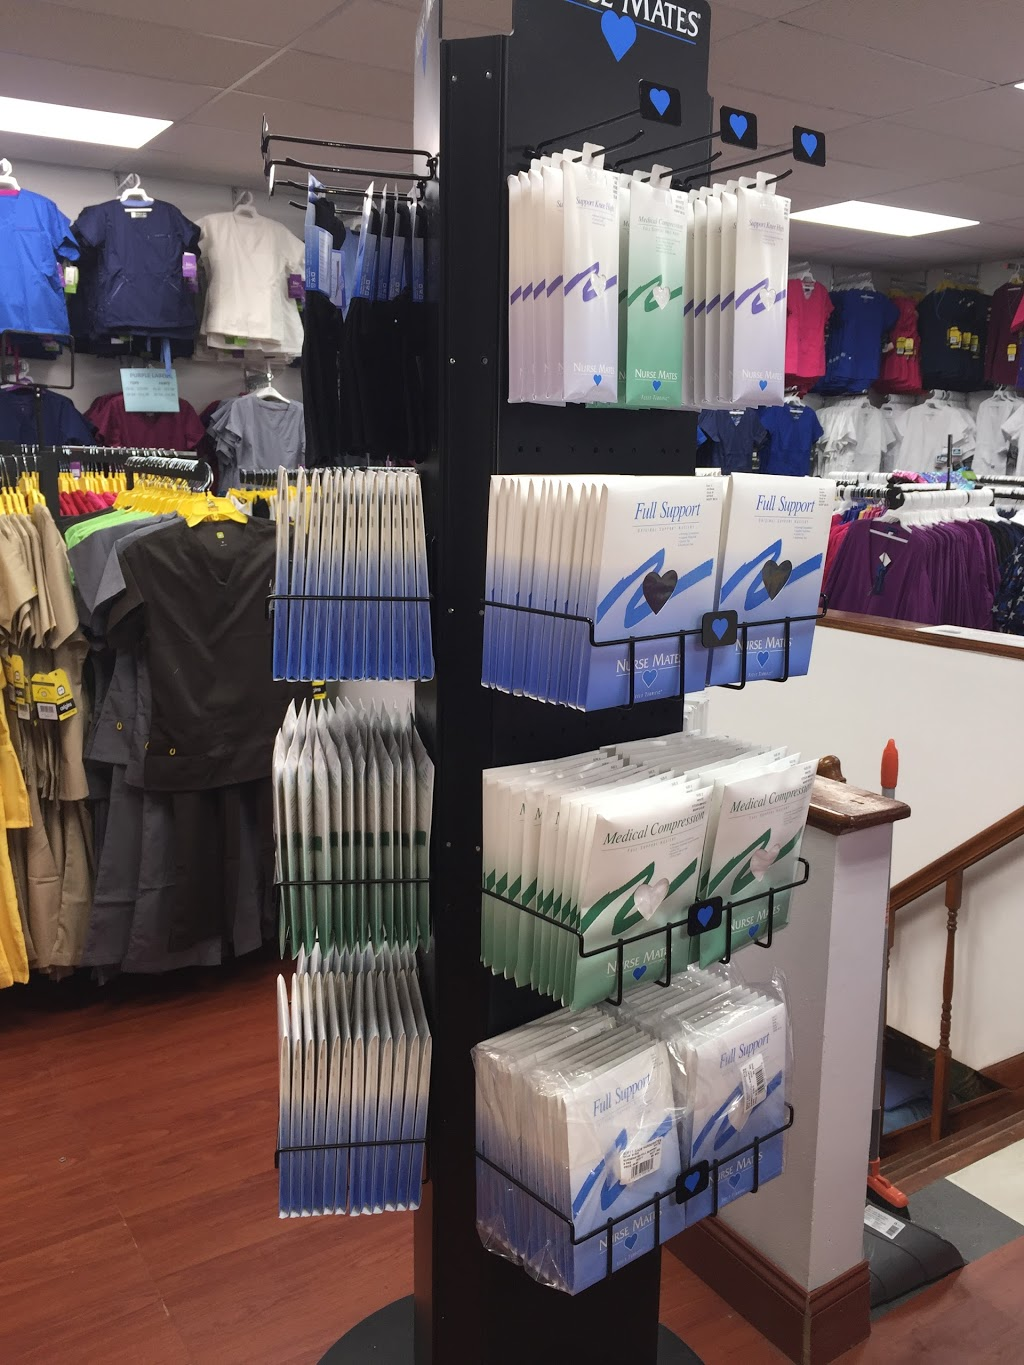 Old Country Medical Apparel - clothing store  | Photo 5 of 10 | Address: 451 Old Country Rd, Westbury, NY 11590, USA | Phone: (516) 307-8968